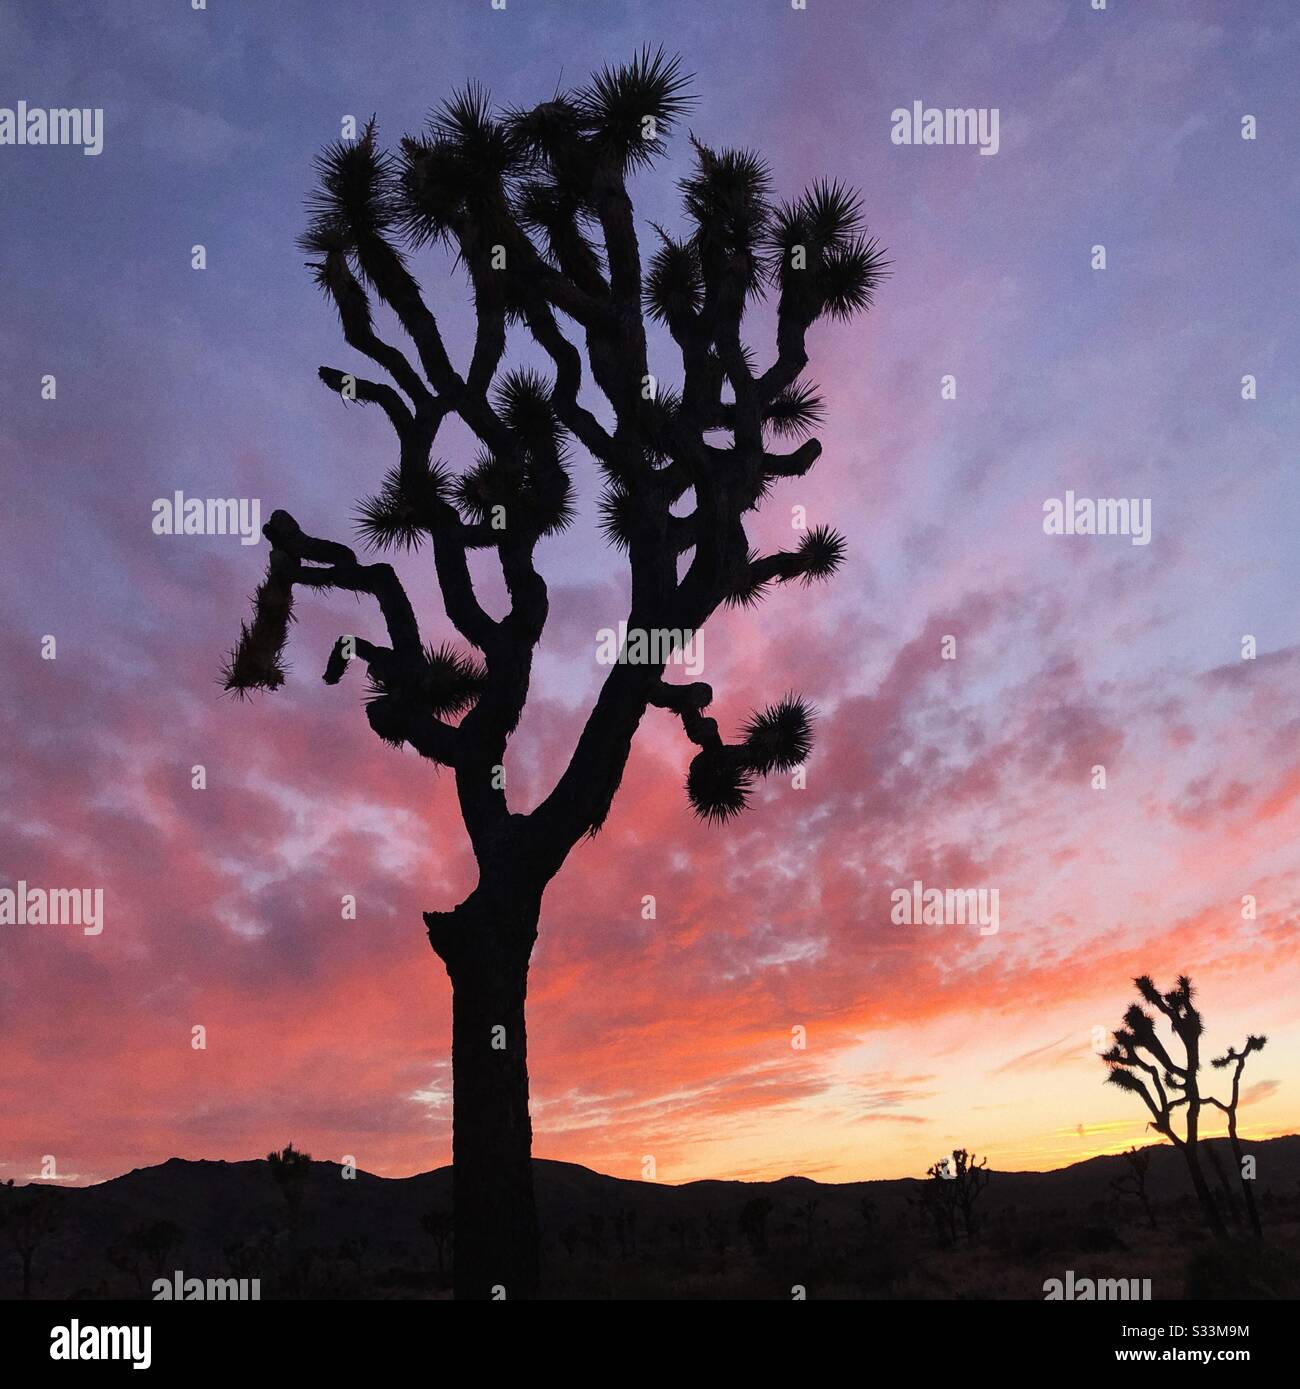 Pink And Purple Sunset At Joshua Tree National Park In California Stock Photo Alamy